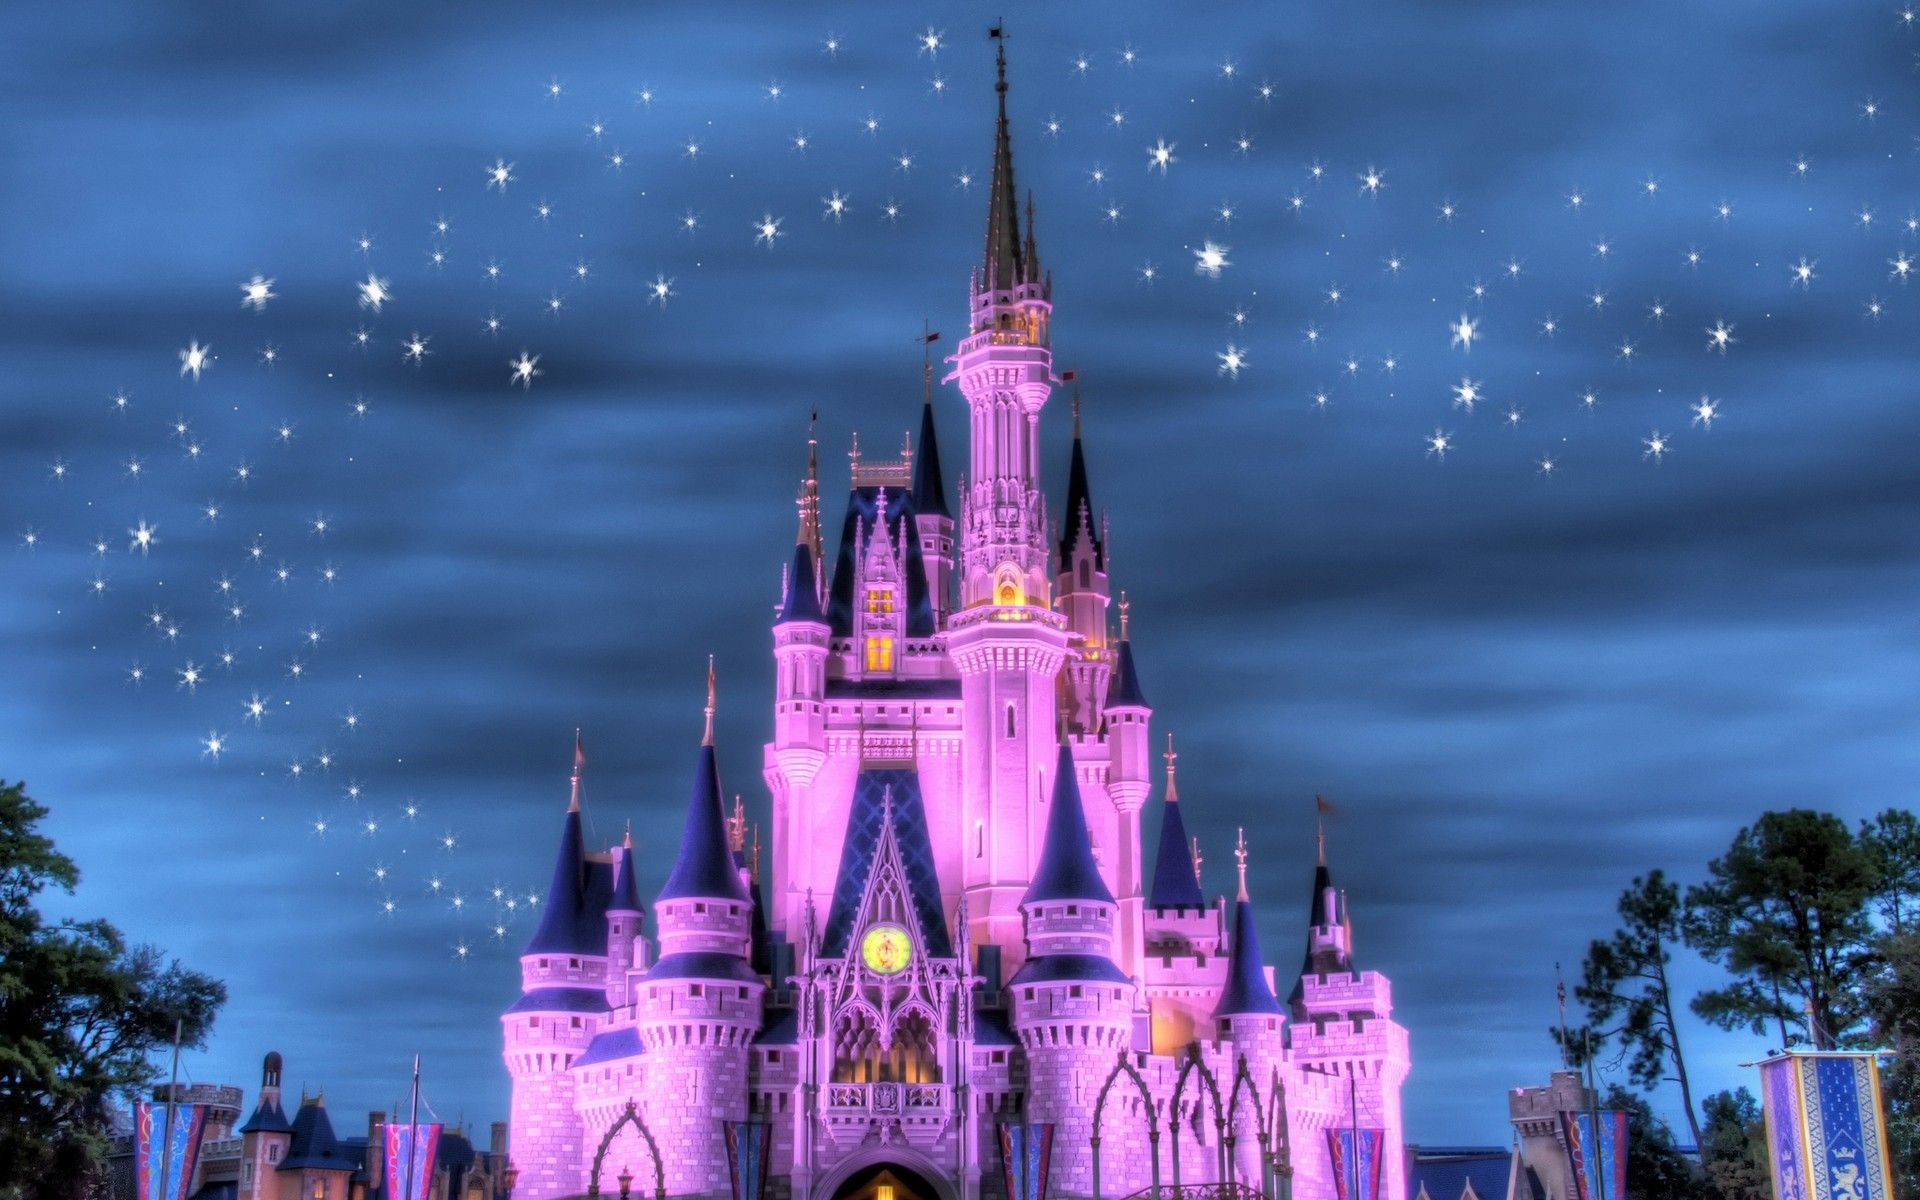 1920x1200 hd disney world photos hd desktop wallpapers background photos windows  wallpapers download free images high quality dual monitors colourful  1920×1200 ...